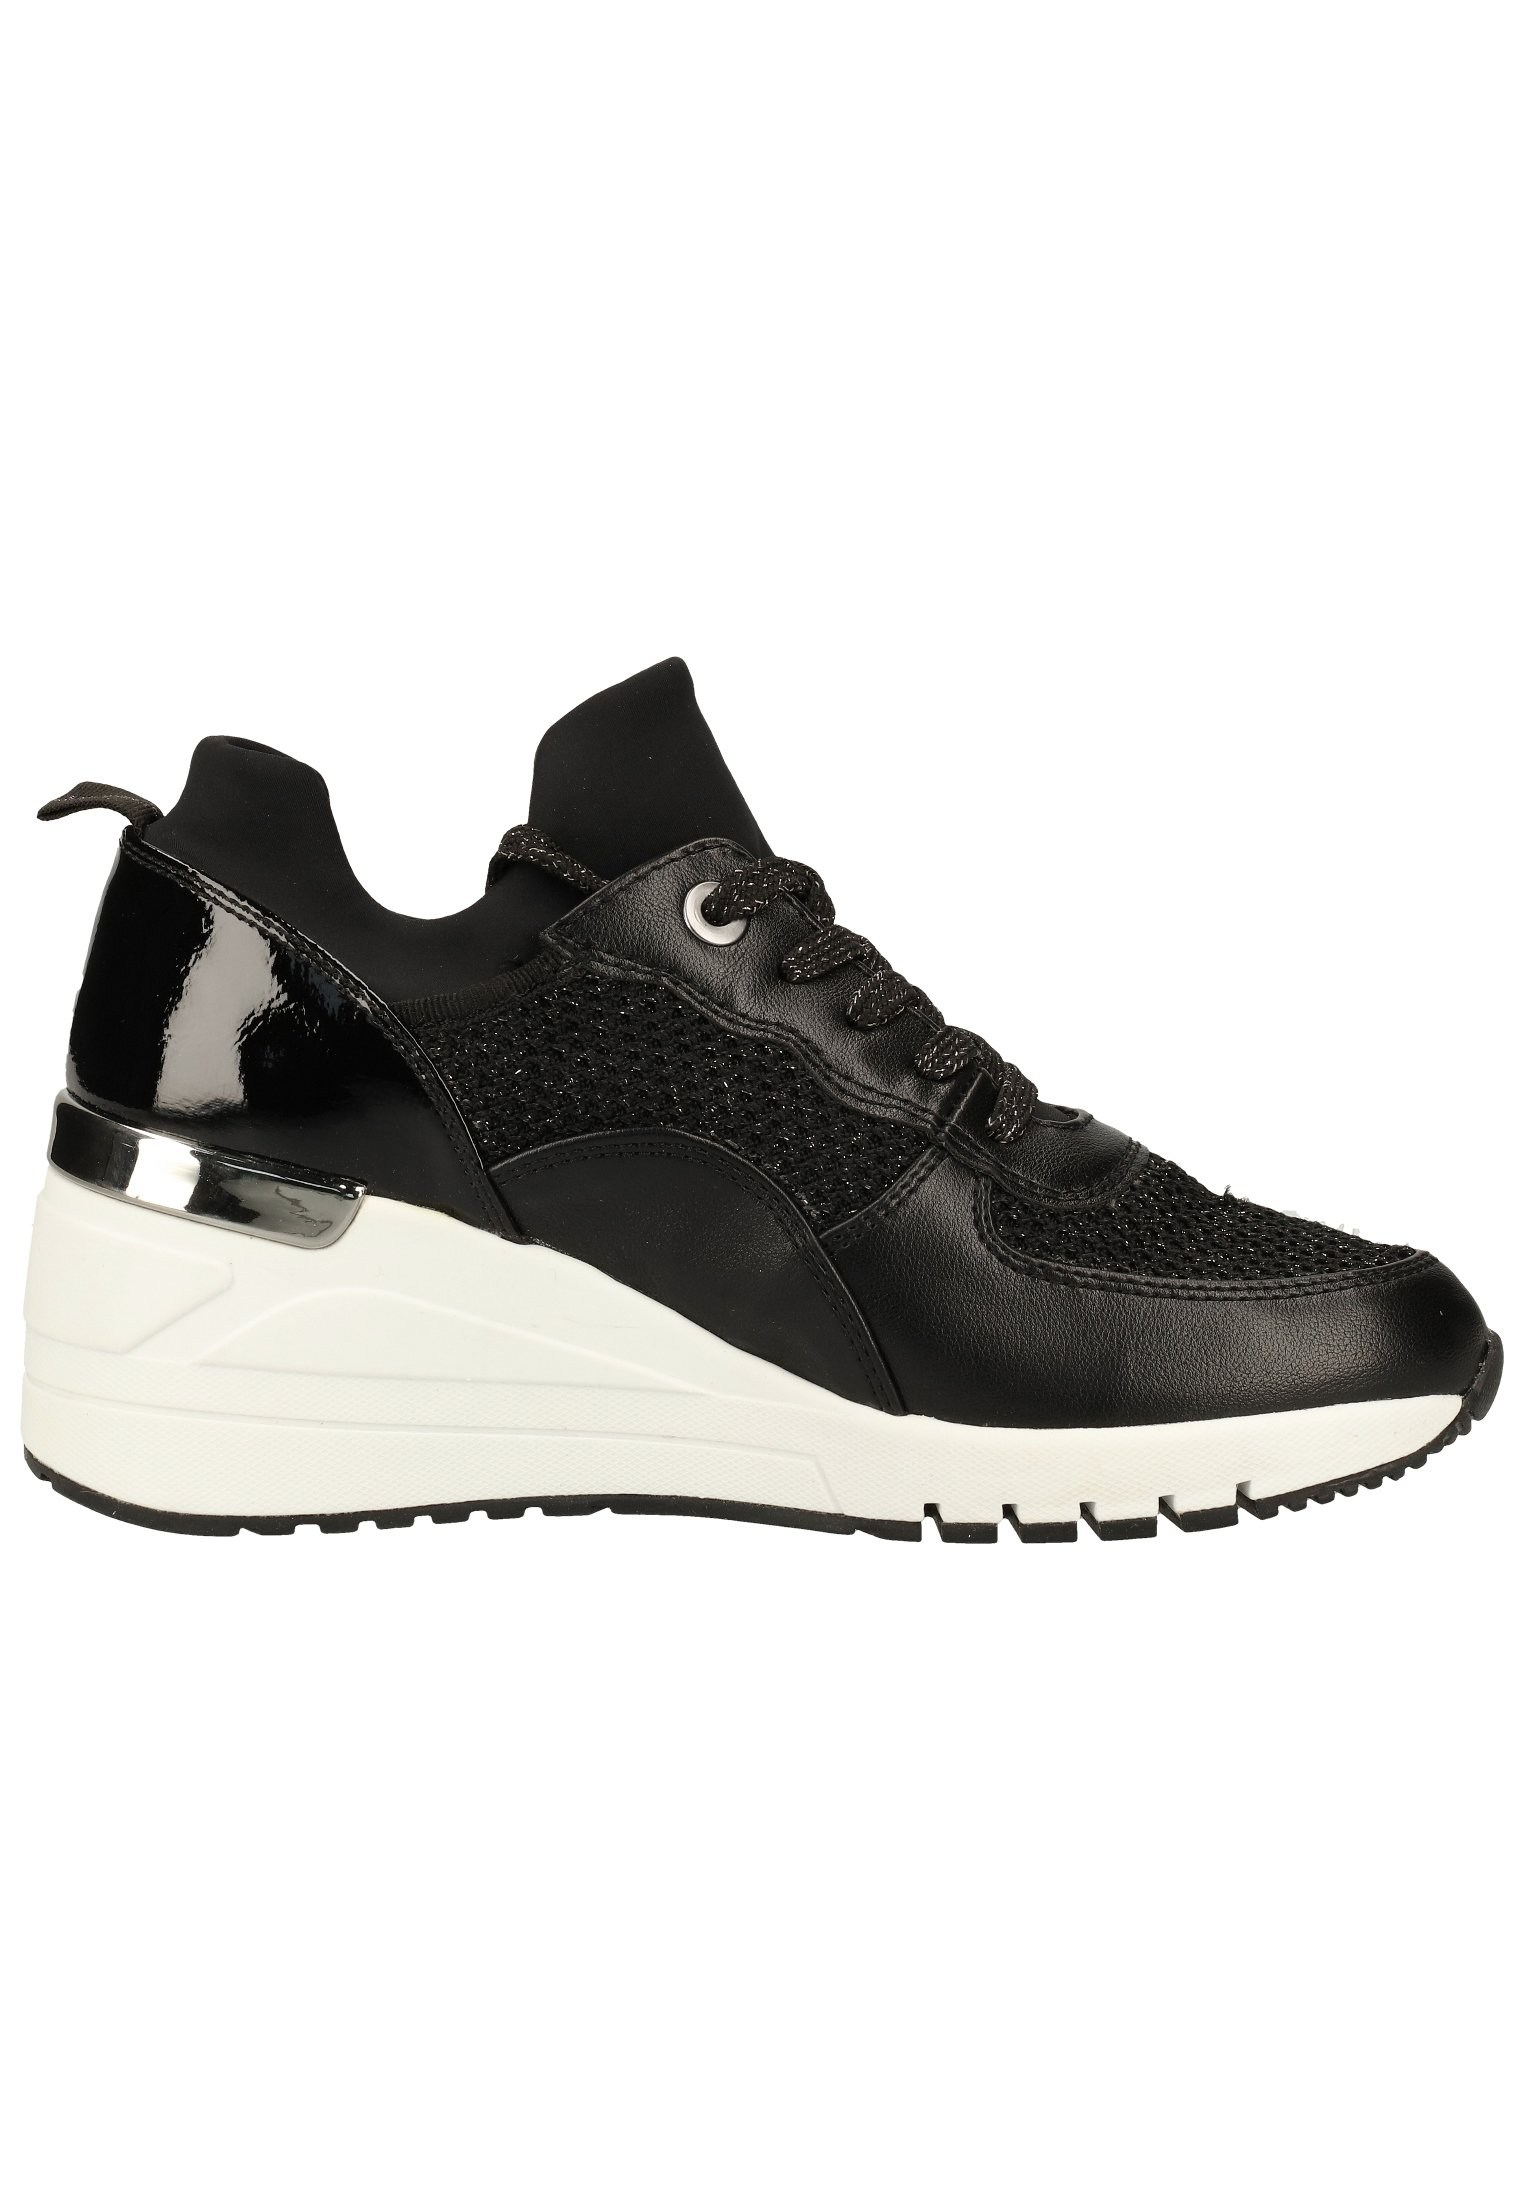 Marco Tozzi Sneakers alte - black 5nkKNoMD